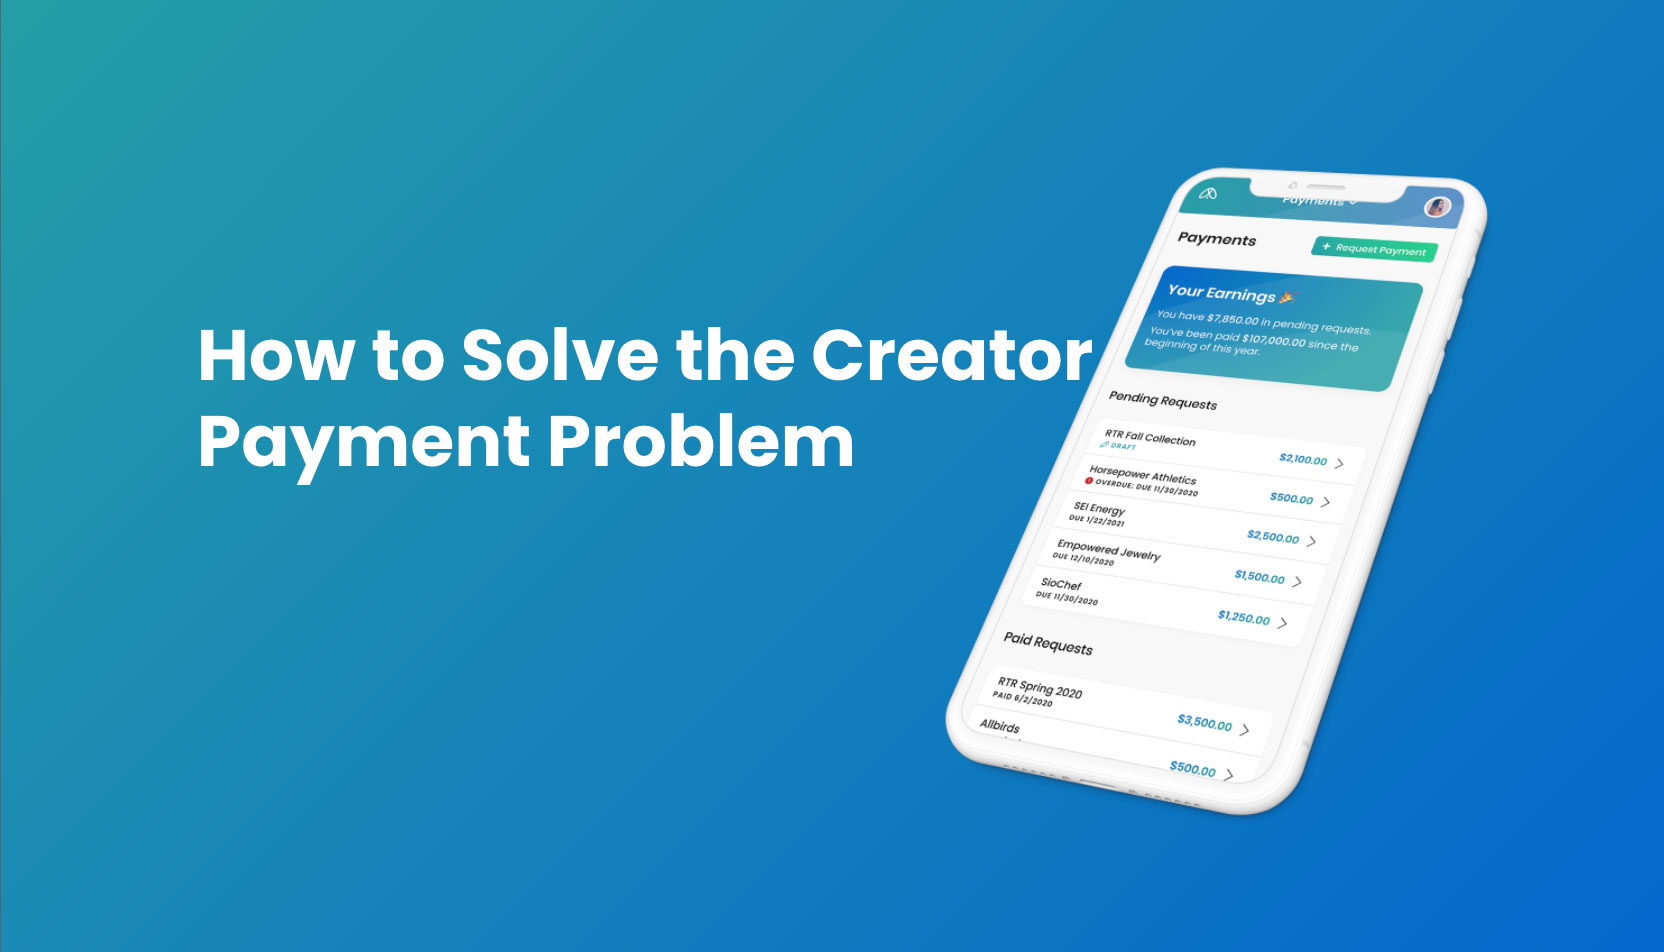 Getting paid on time is incredibly important for all digital content creators. Yet, the processes associated with creator payments are some of the most frustrating parts of the business. Lumanu solves these issues and provides the lowest fees in the industry.